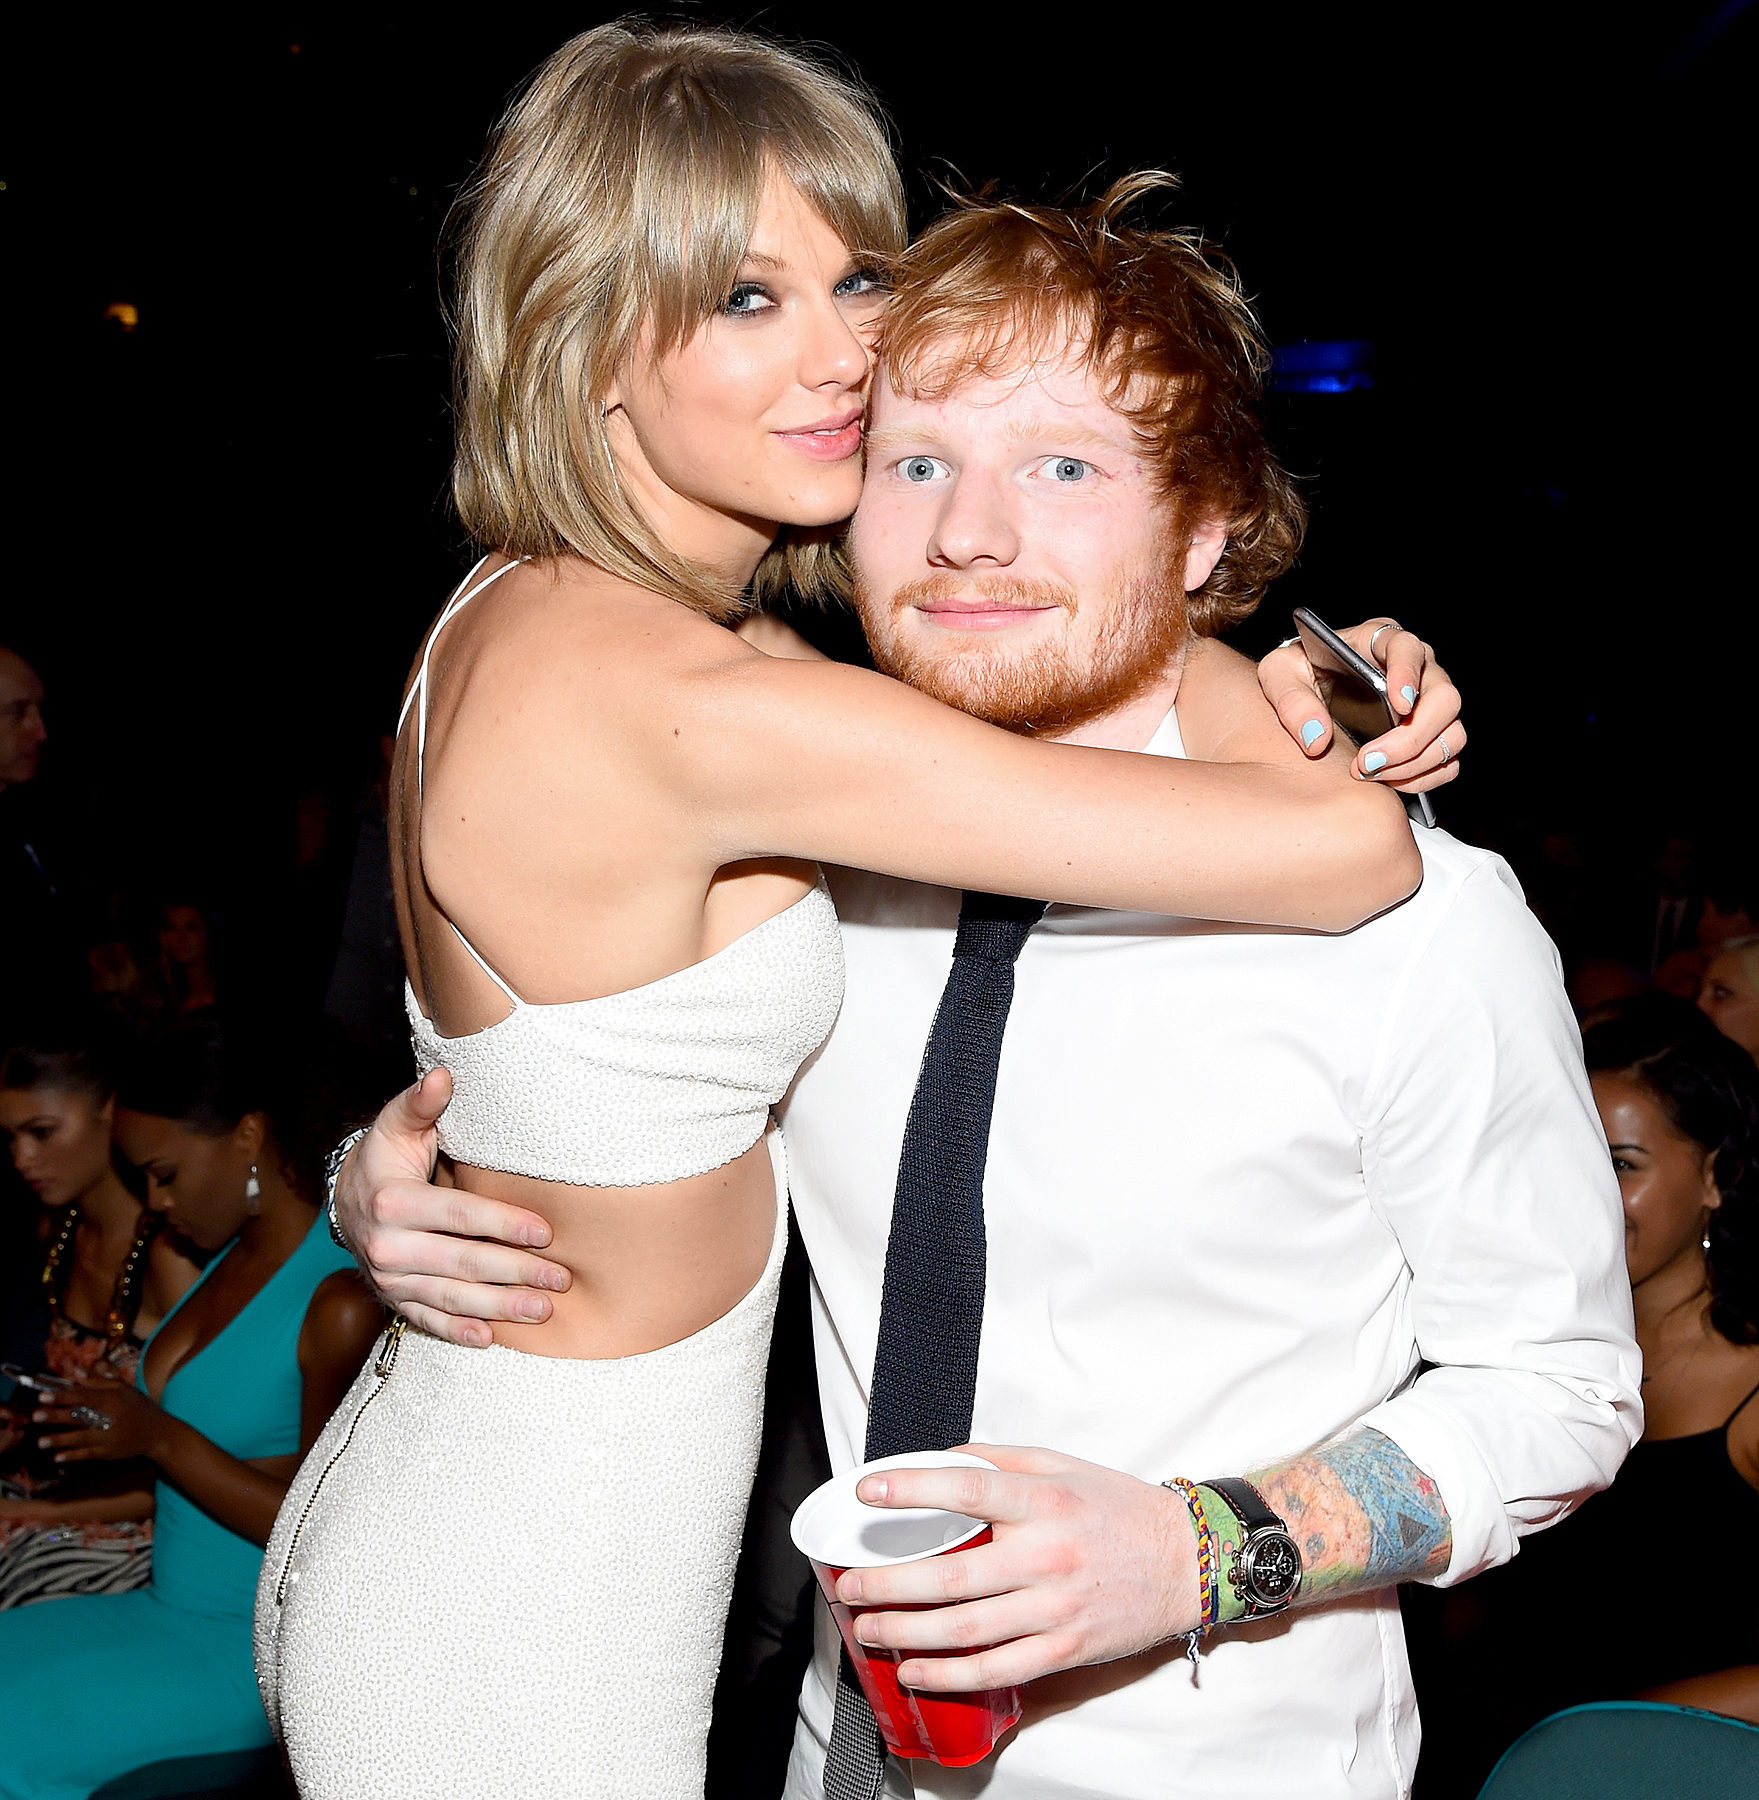 Taylor Swift and Ed Sheeran attend the 2015 Billboard Music Awards at MGM Grand Garden Arena on May 17, 2015 in Las Vegas, Nevada.